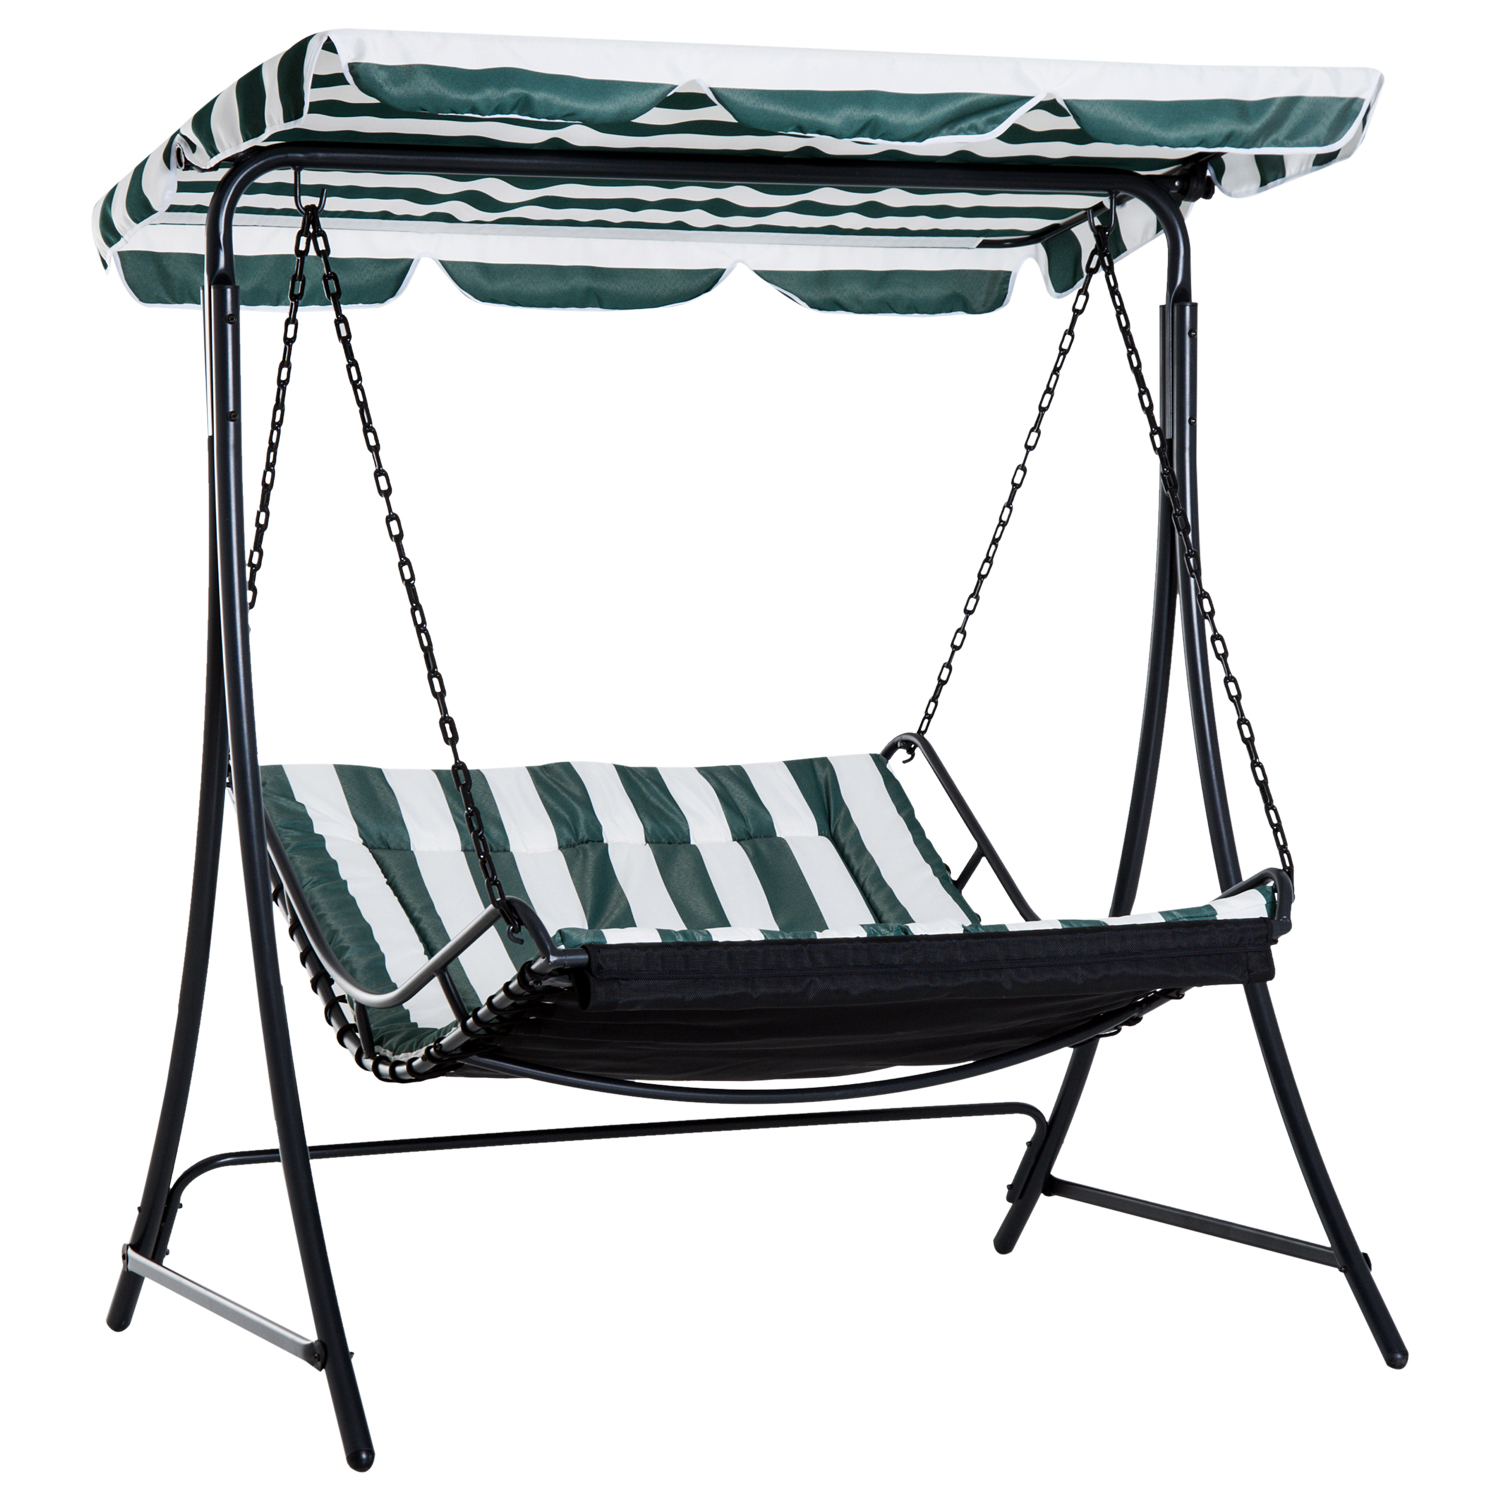 Image of £99.99 Outsunny Swing Chair Hammock Seat-Green/White / Bed Canopy 2 Person Double Garden Bench Rocking Sun Lounger Outdoor Backyard Furniture with Cushion - Green & White Seat Adjustable Steel 84A-072 5056029891544